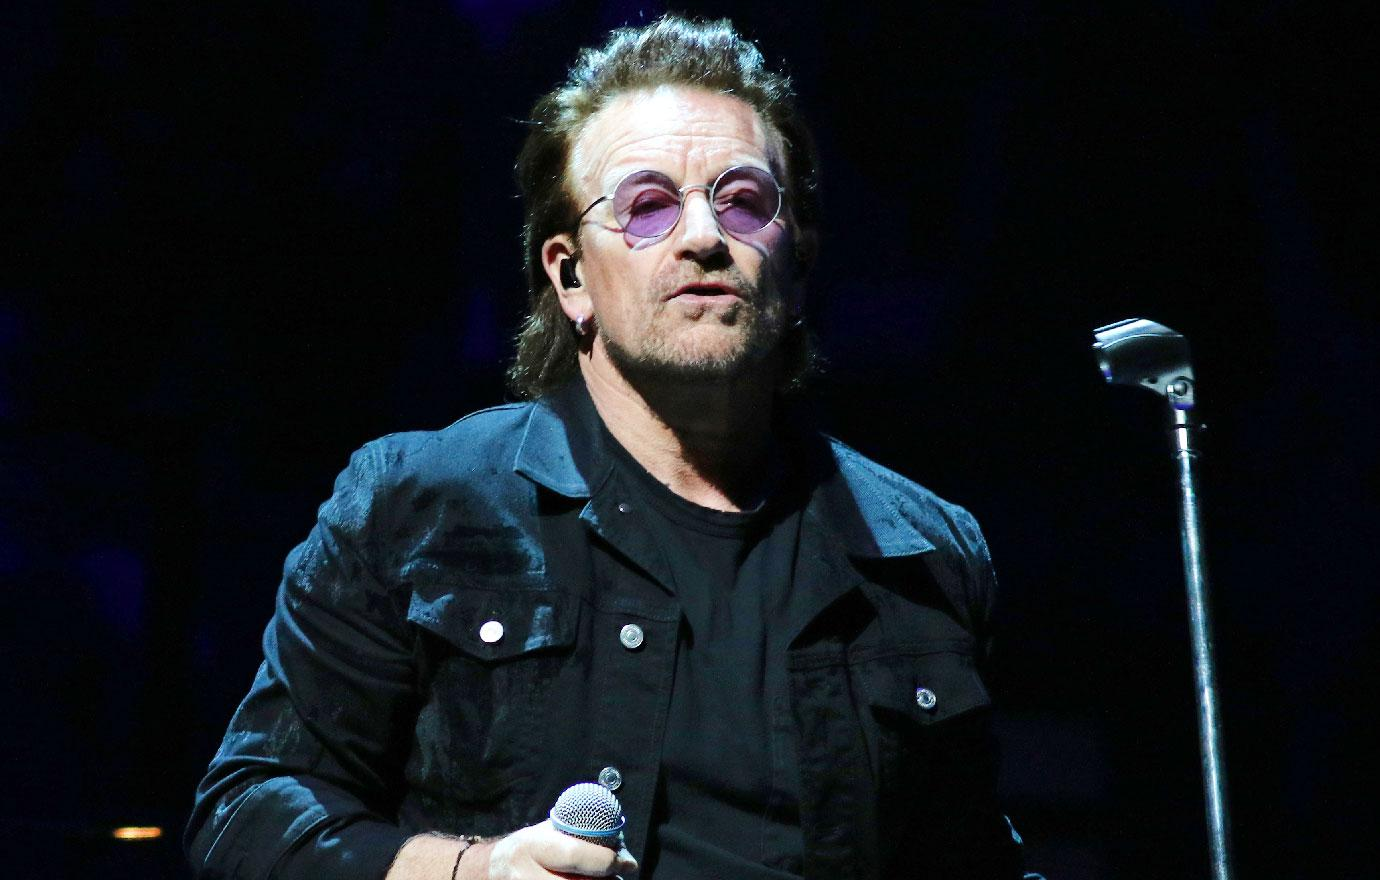 Bono Loses Voice During Berlin Concert